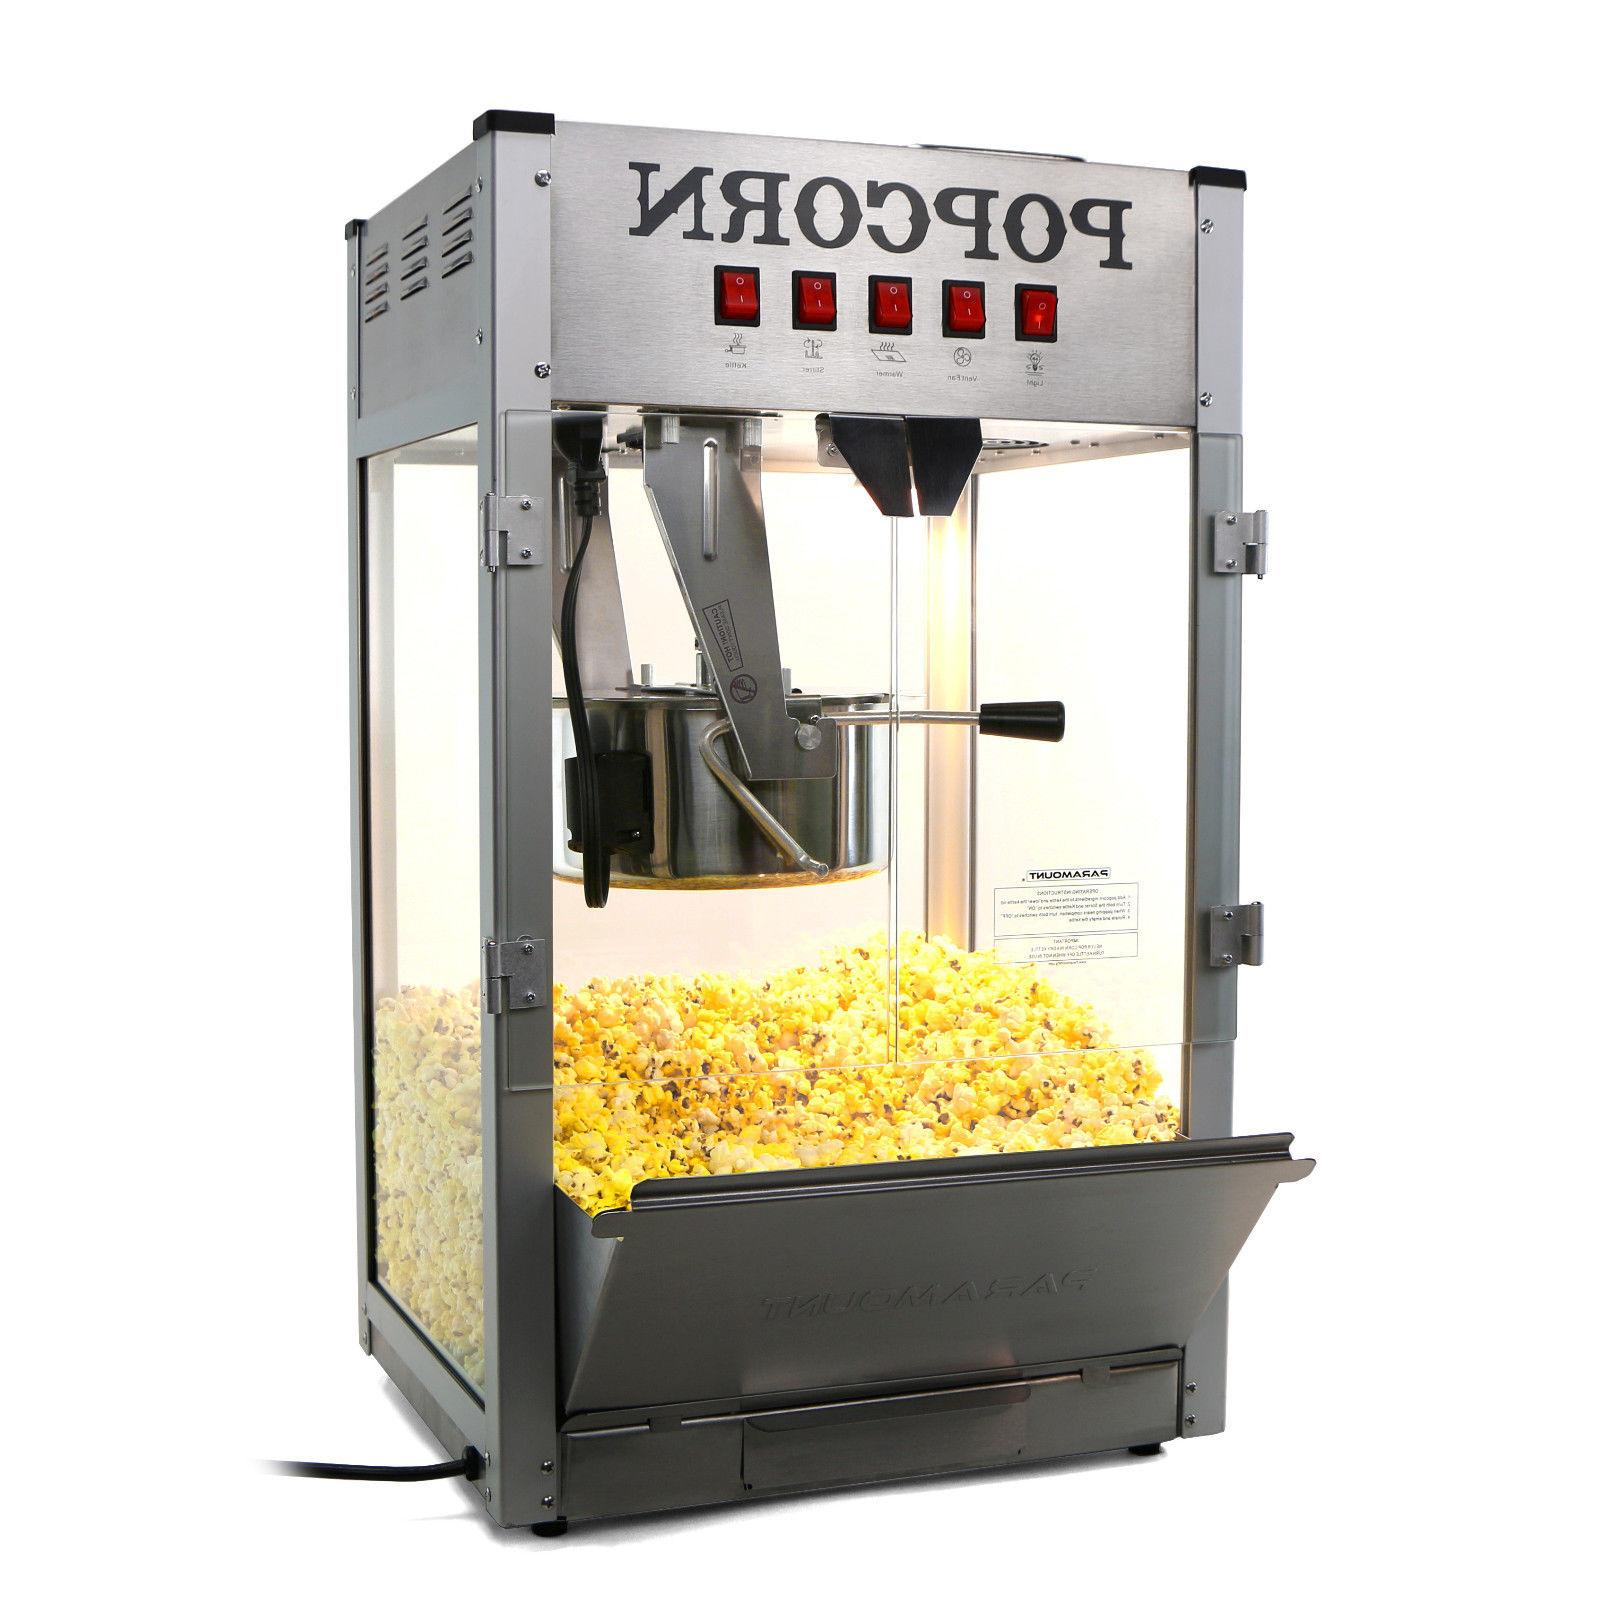 16oz commercial popcorn maker machine 16 oz